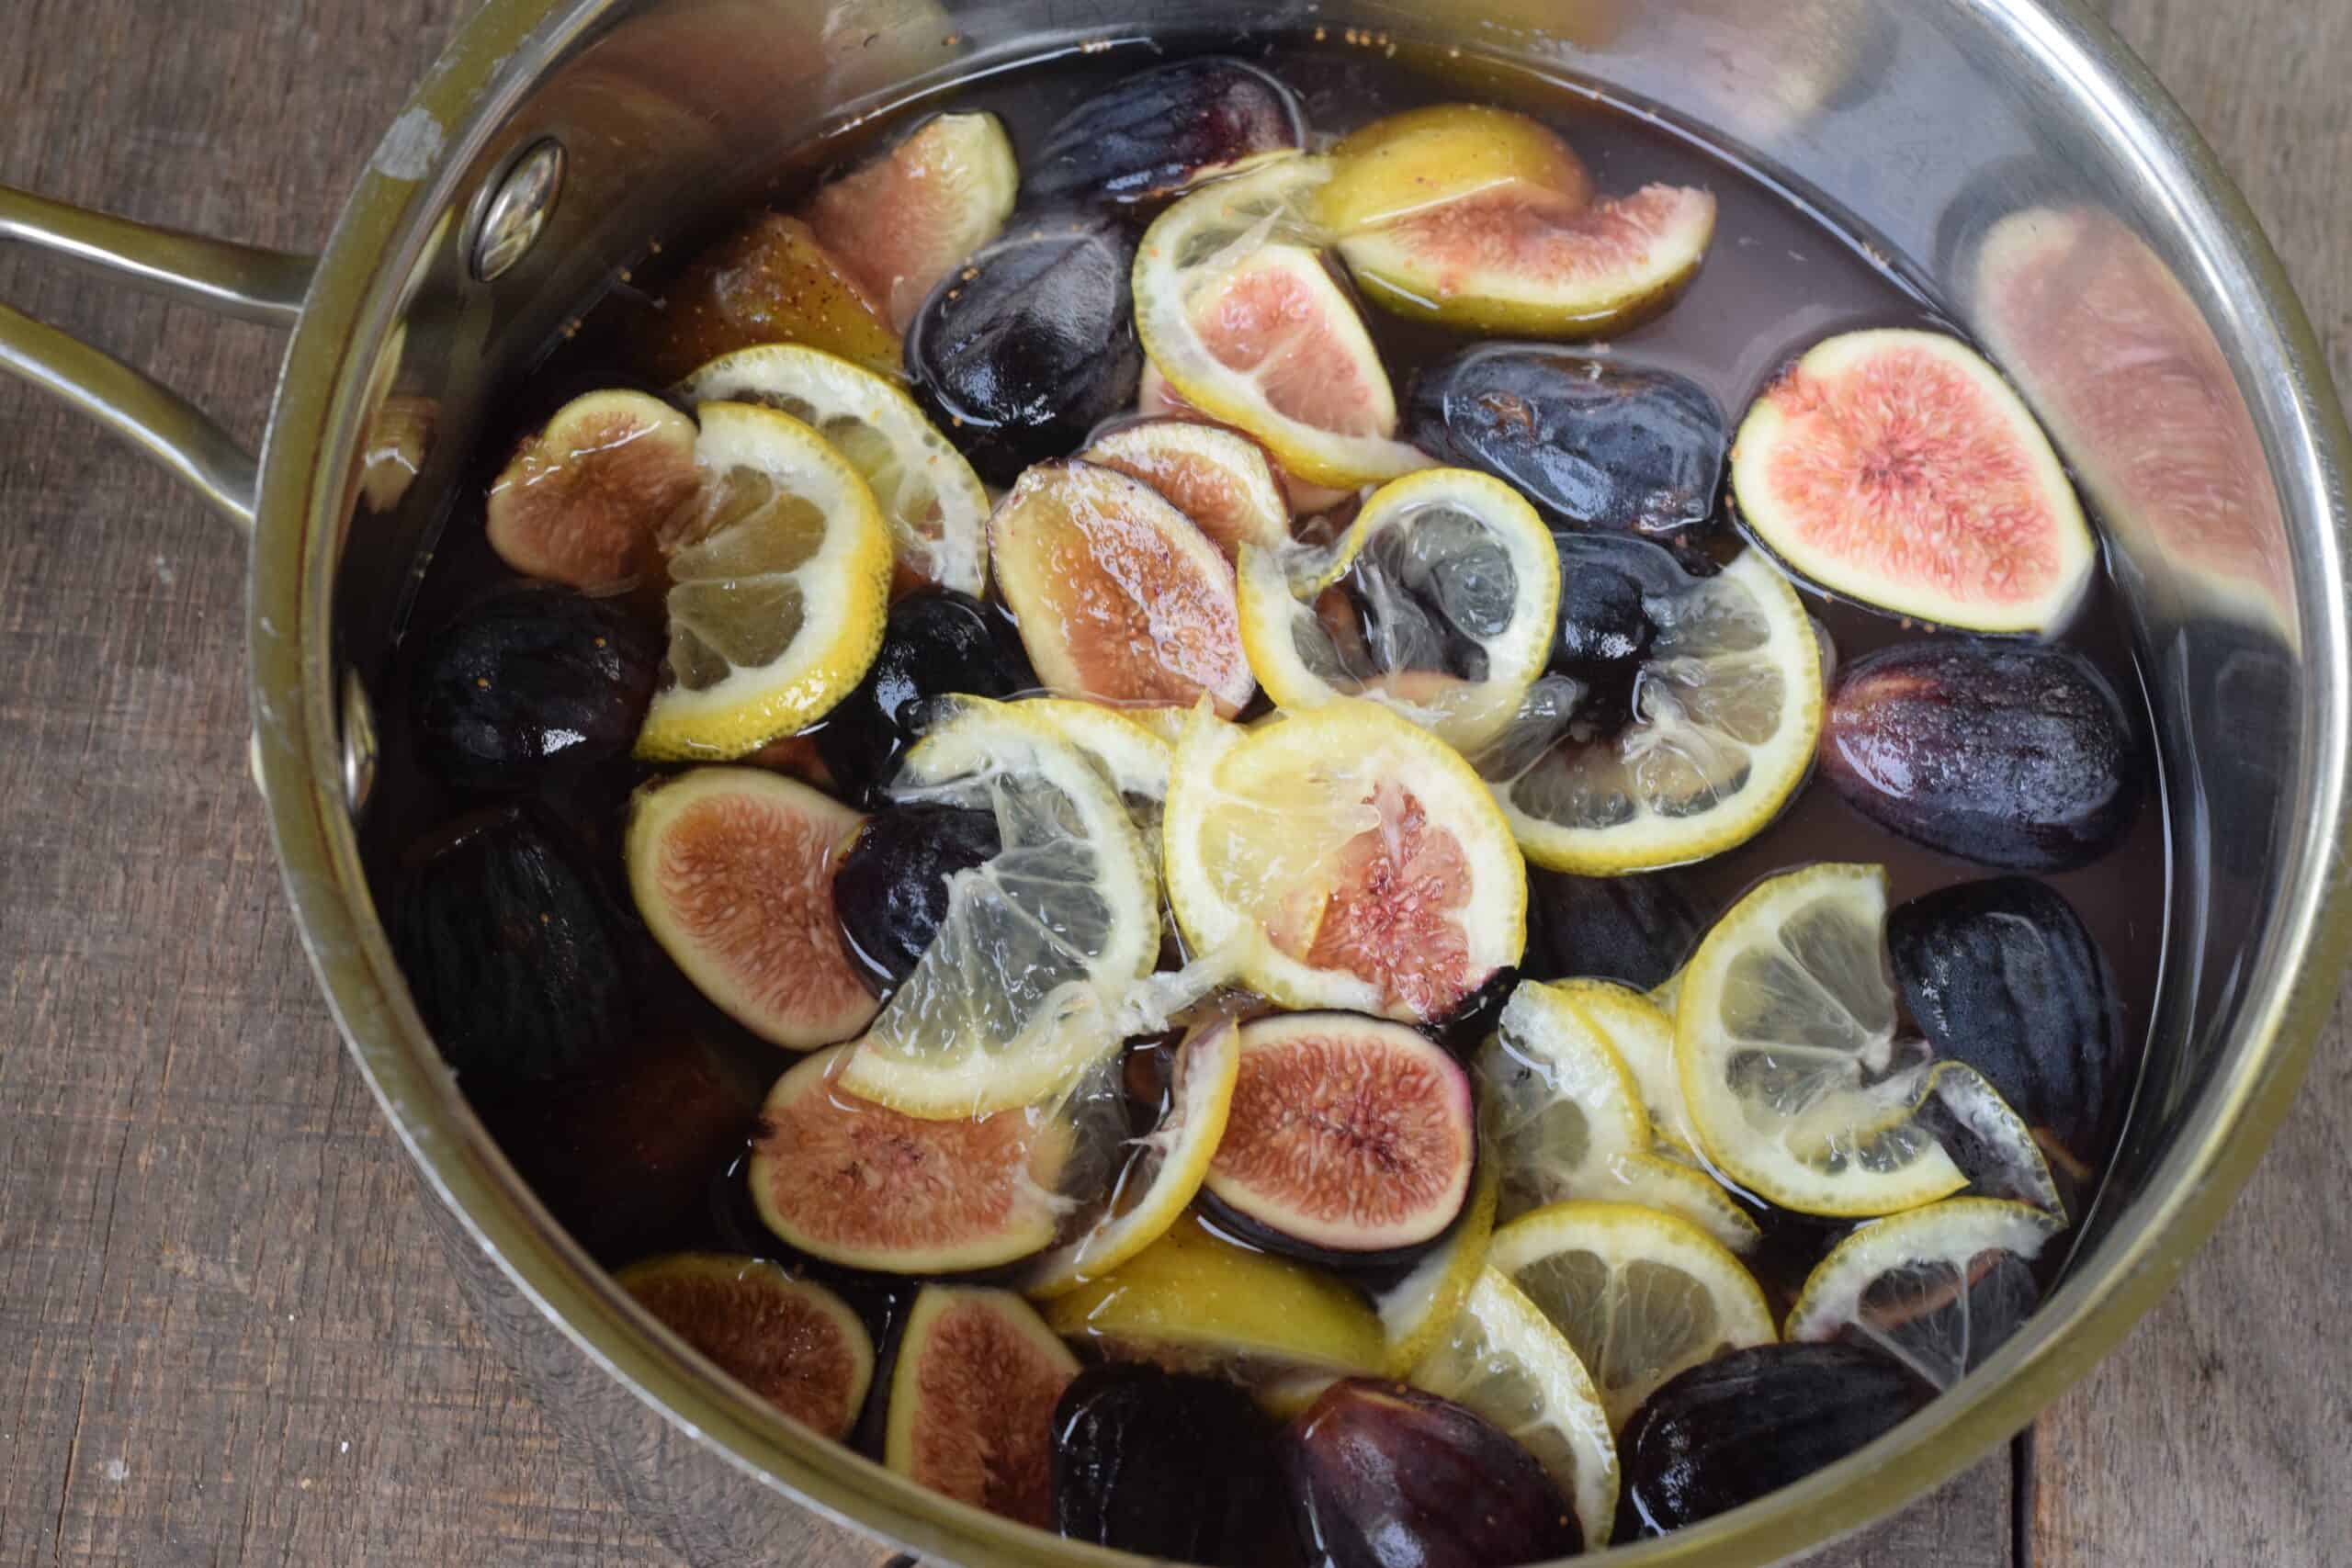 fig halves and lemon slices steeping in a saucepan of water